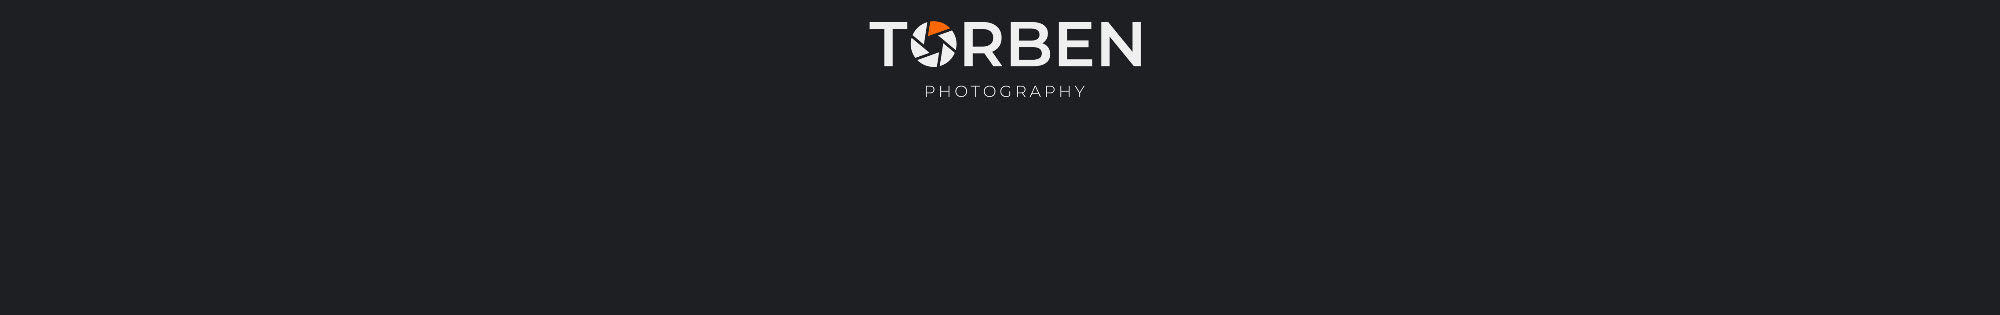 Torben Photography